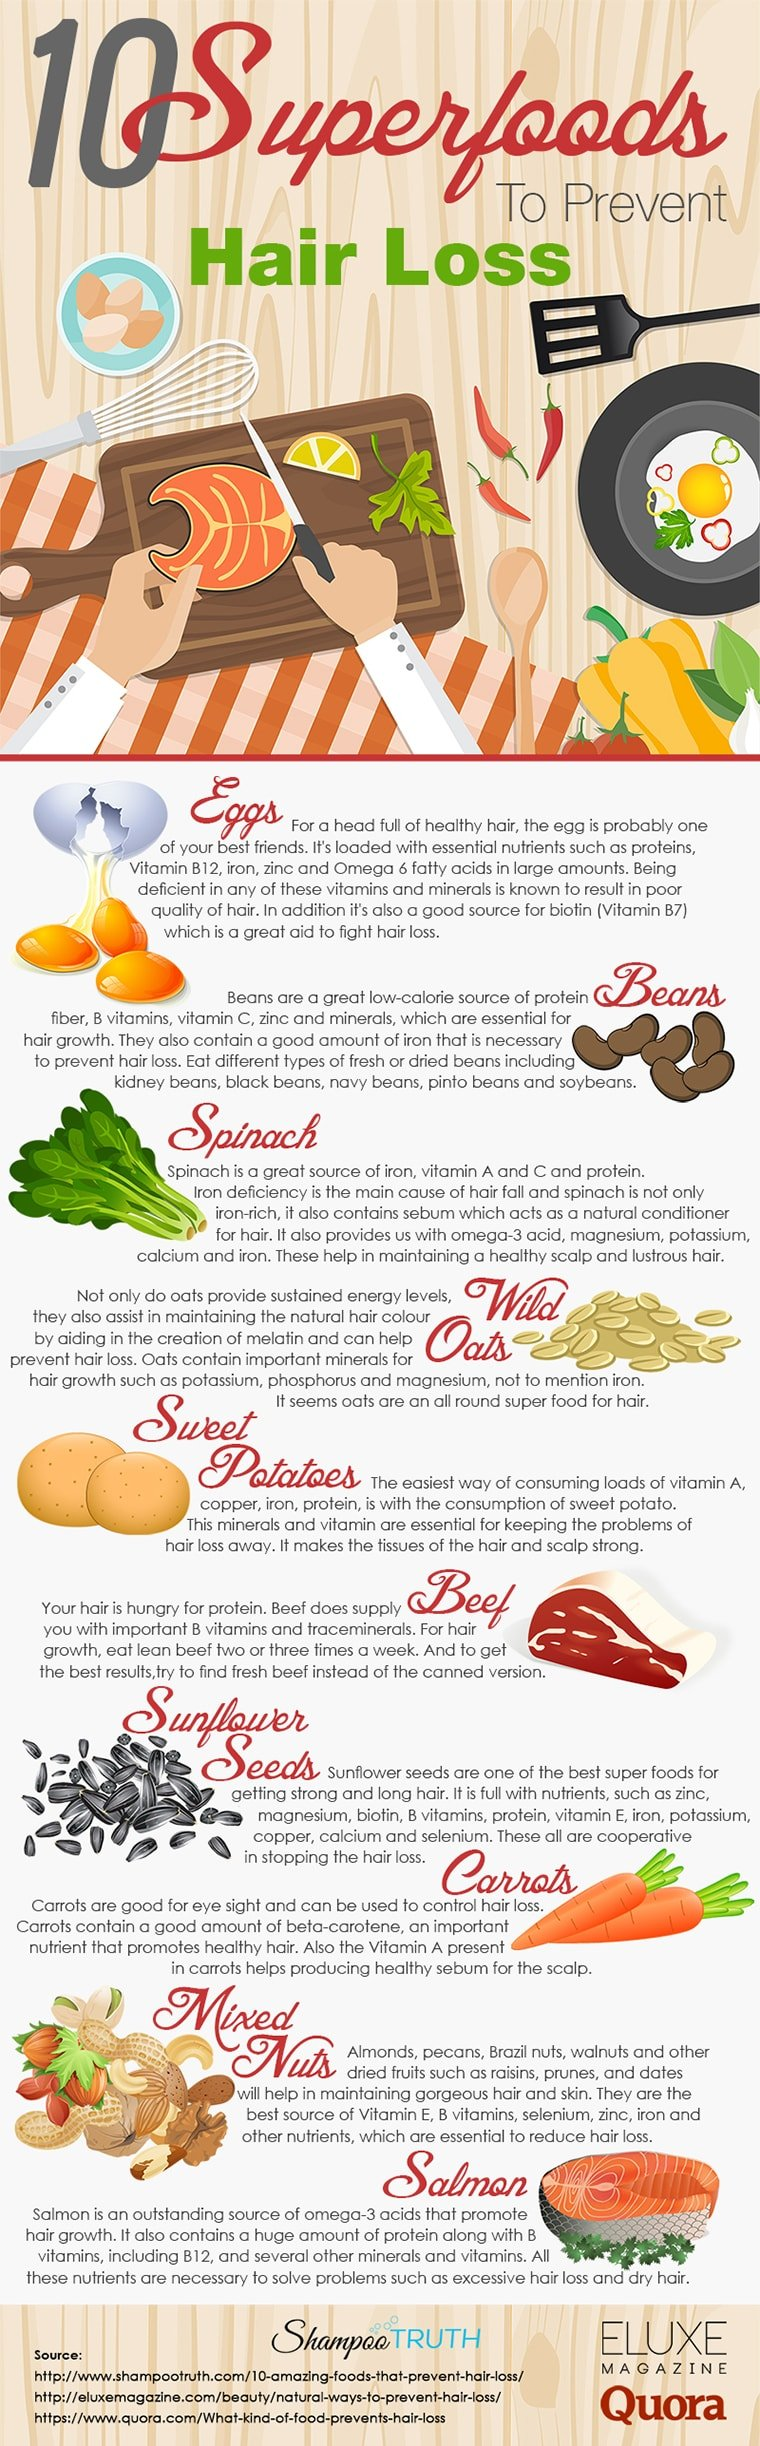 10 Superfoods to Prevent Hair Loss